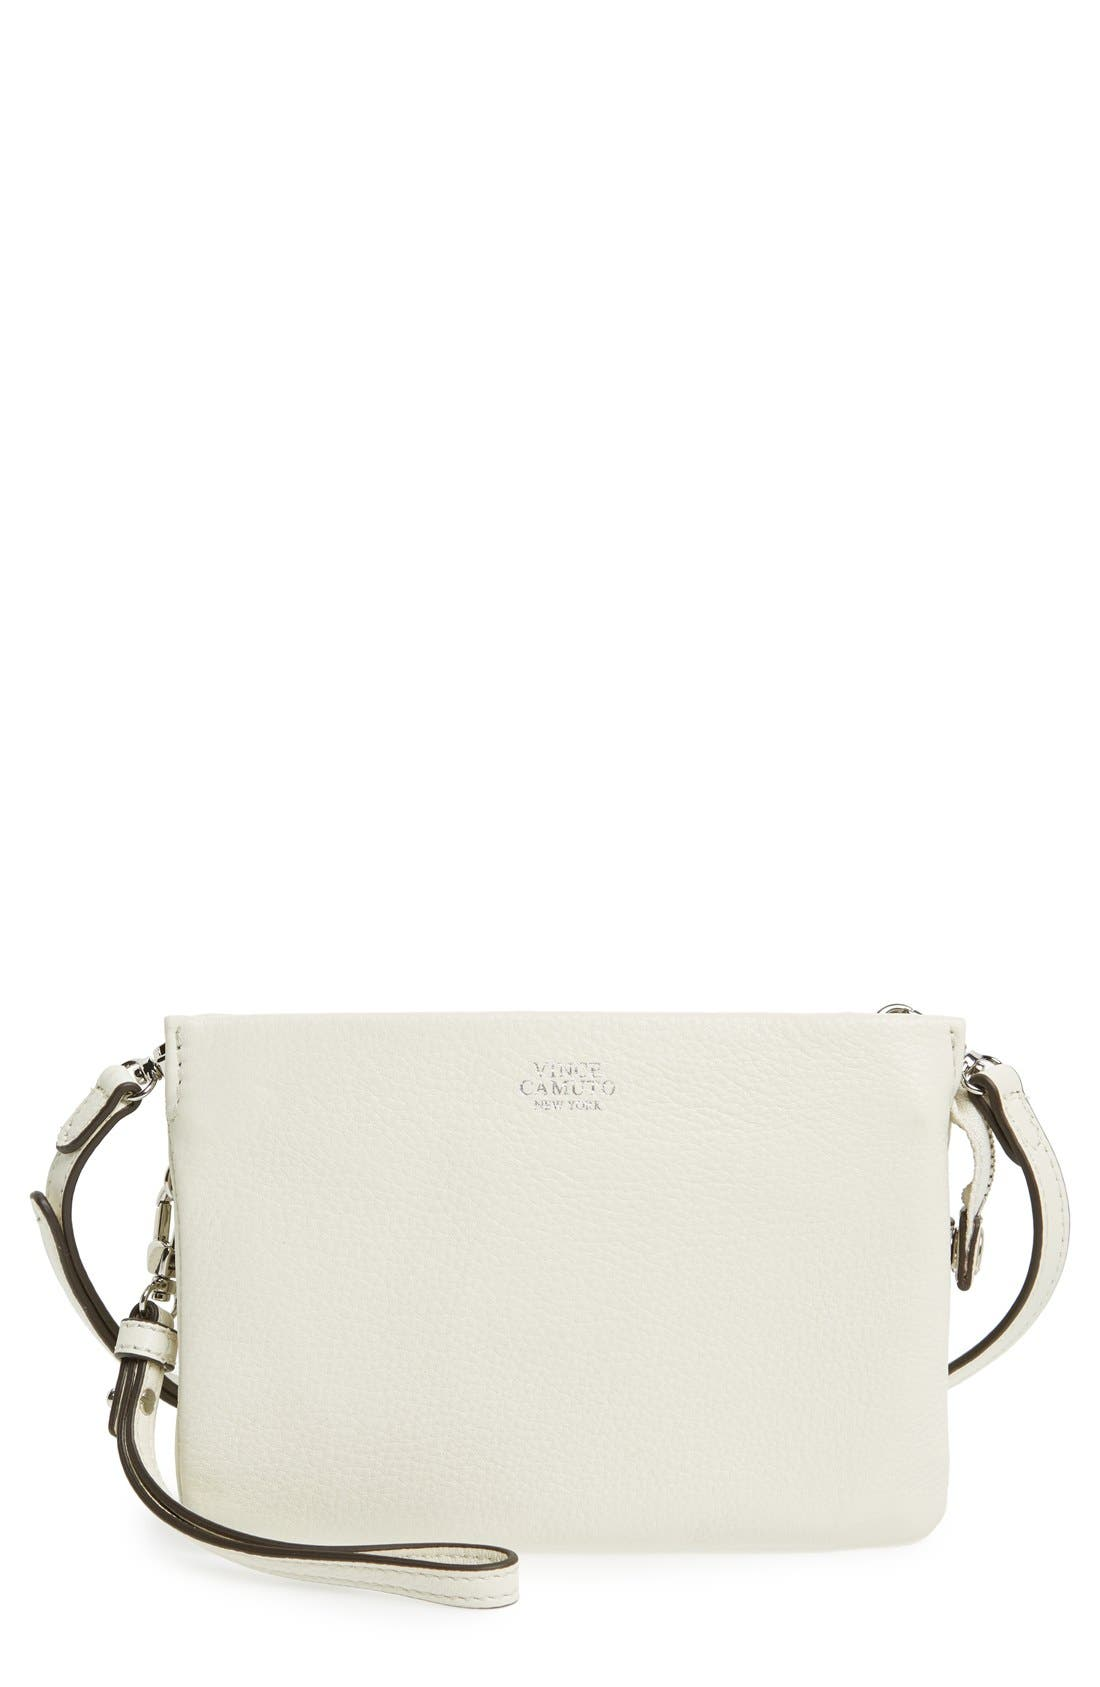 'Cami' Leather Crossbody Bag,                             Main thumbnail 9, color,